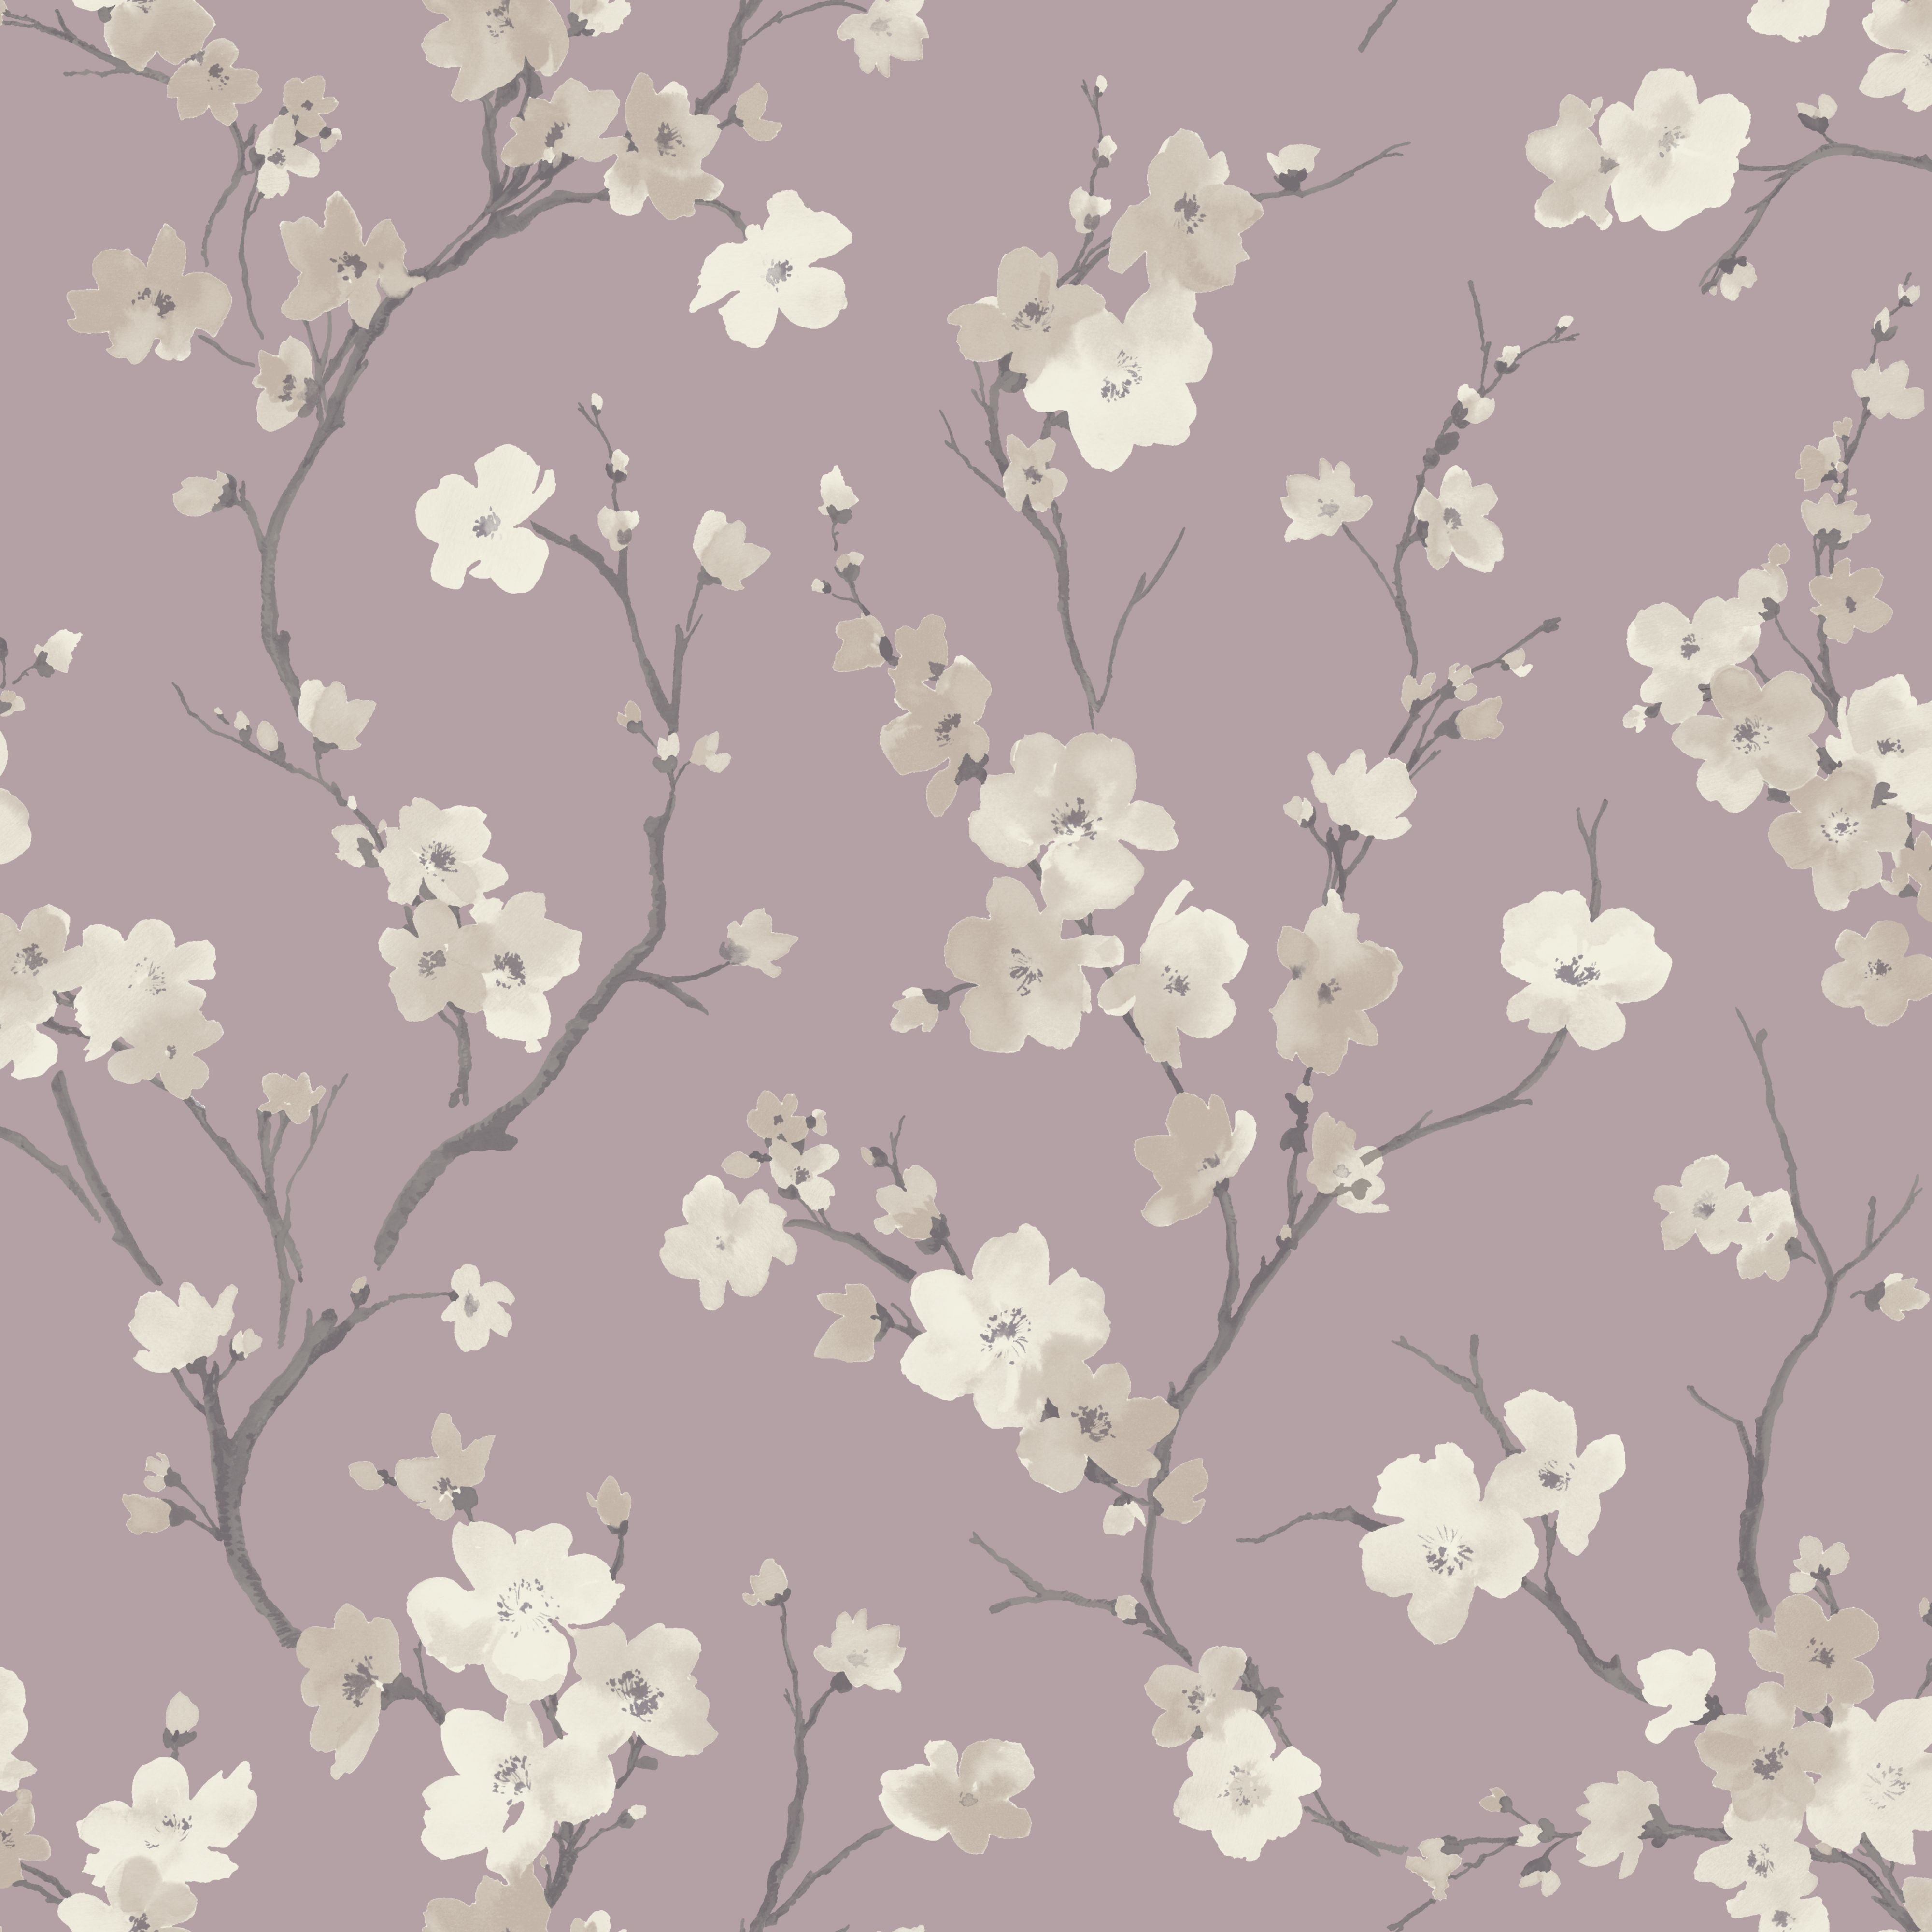 Blossom Wisteria Wallpaper Departments DIY at B&Q